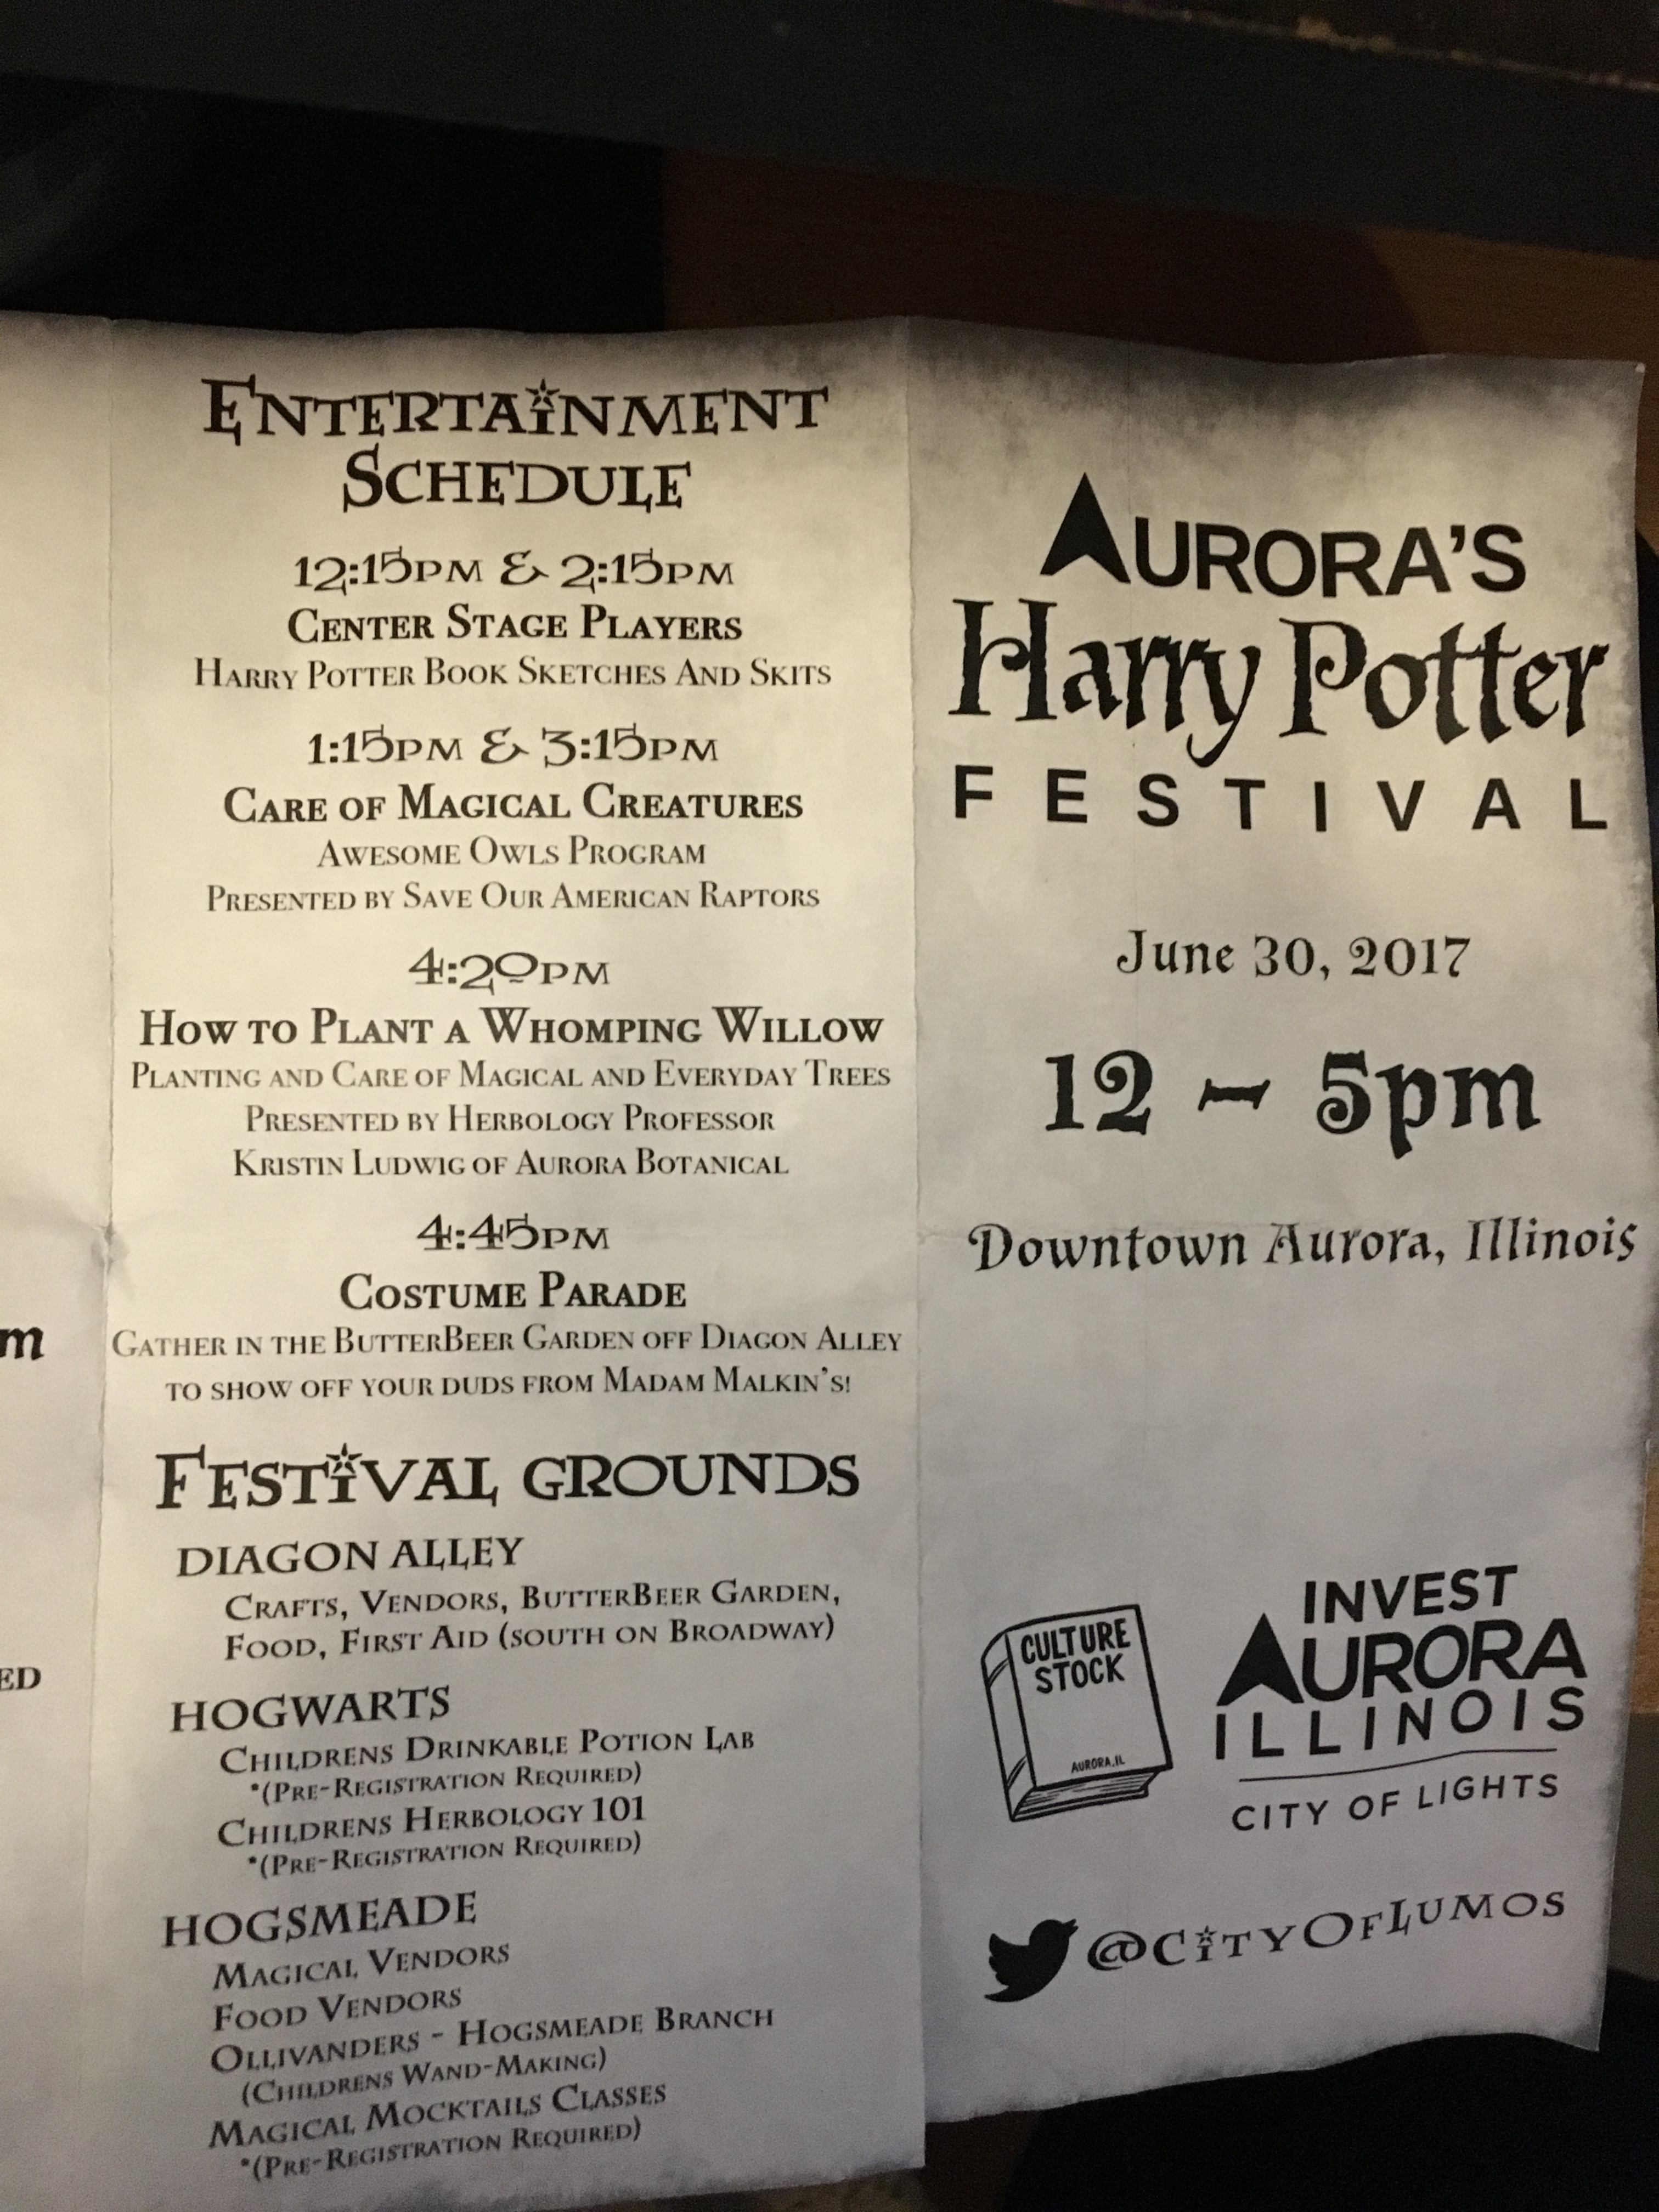 Harry potter aurora il